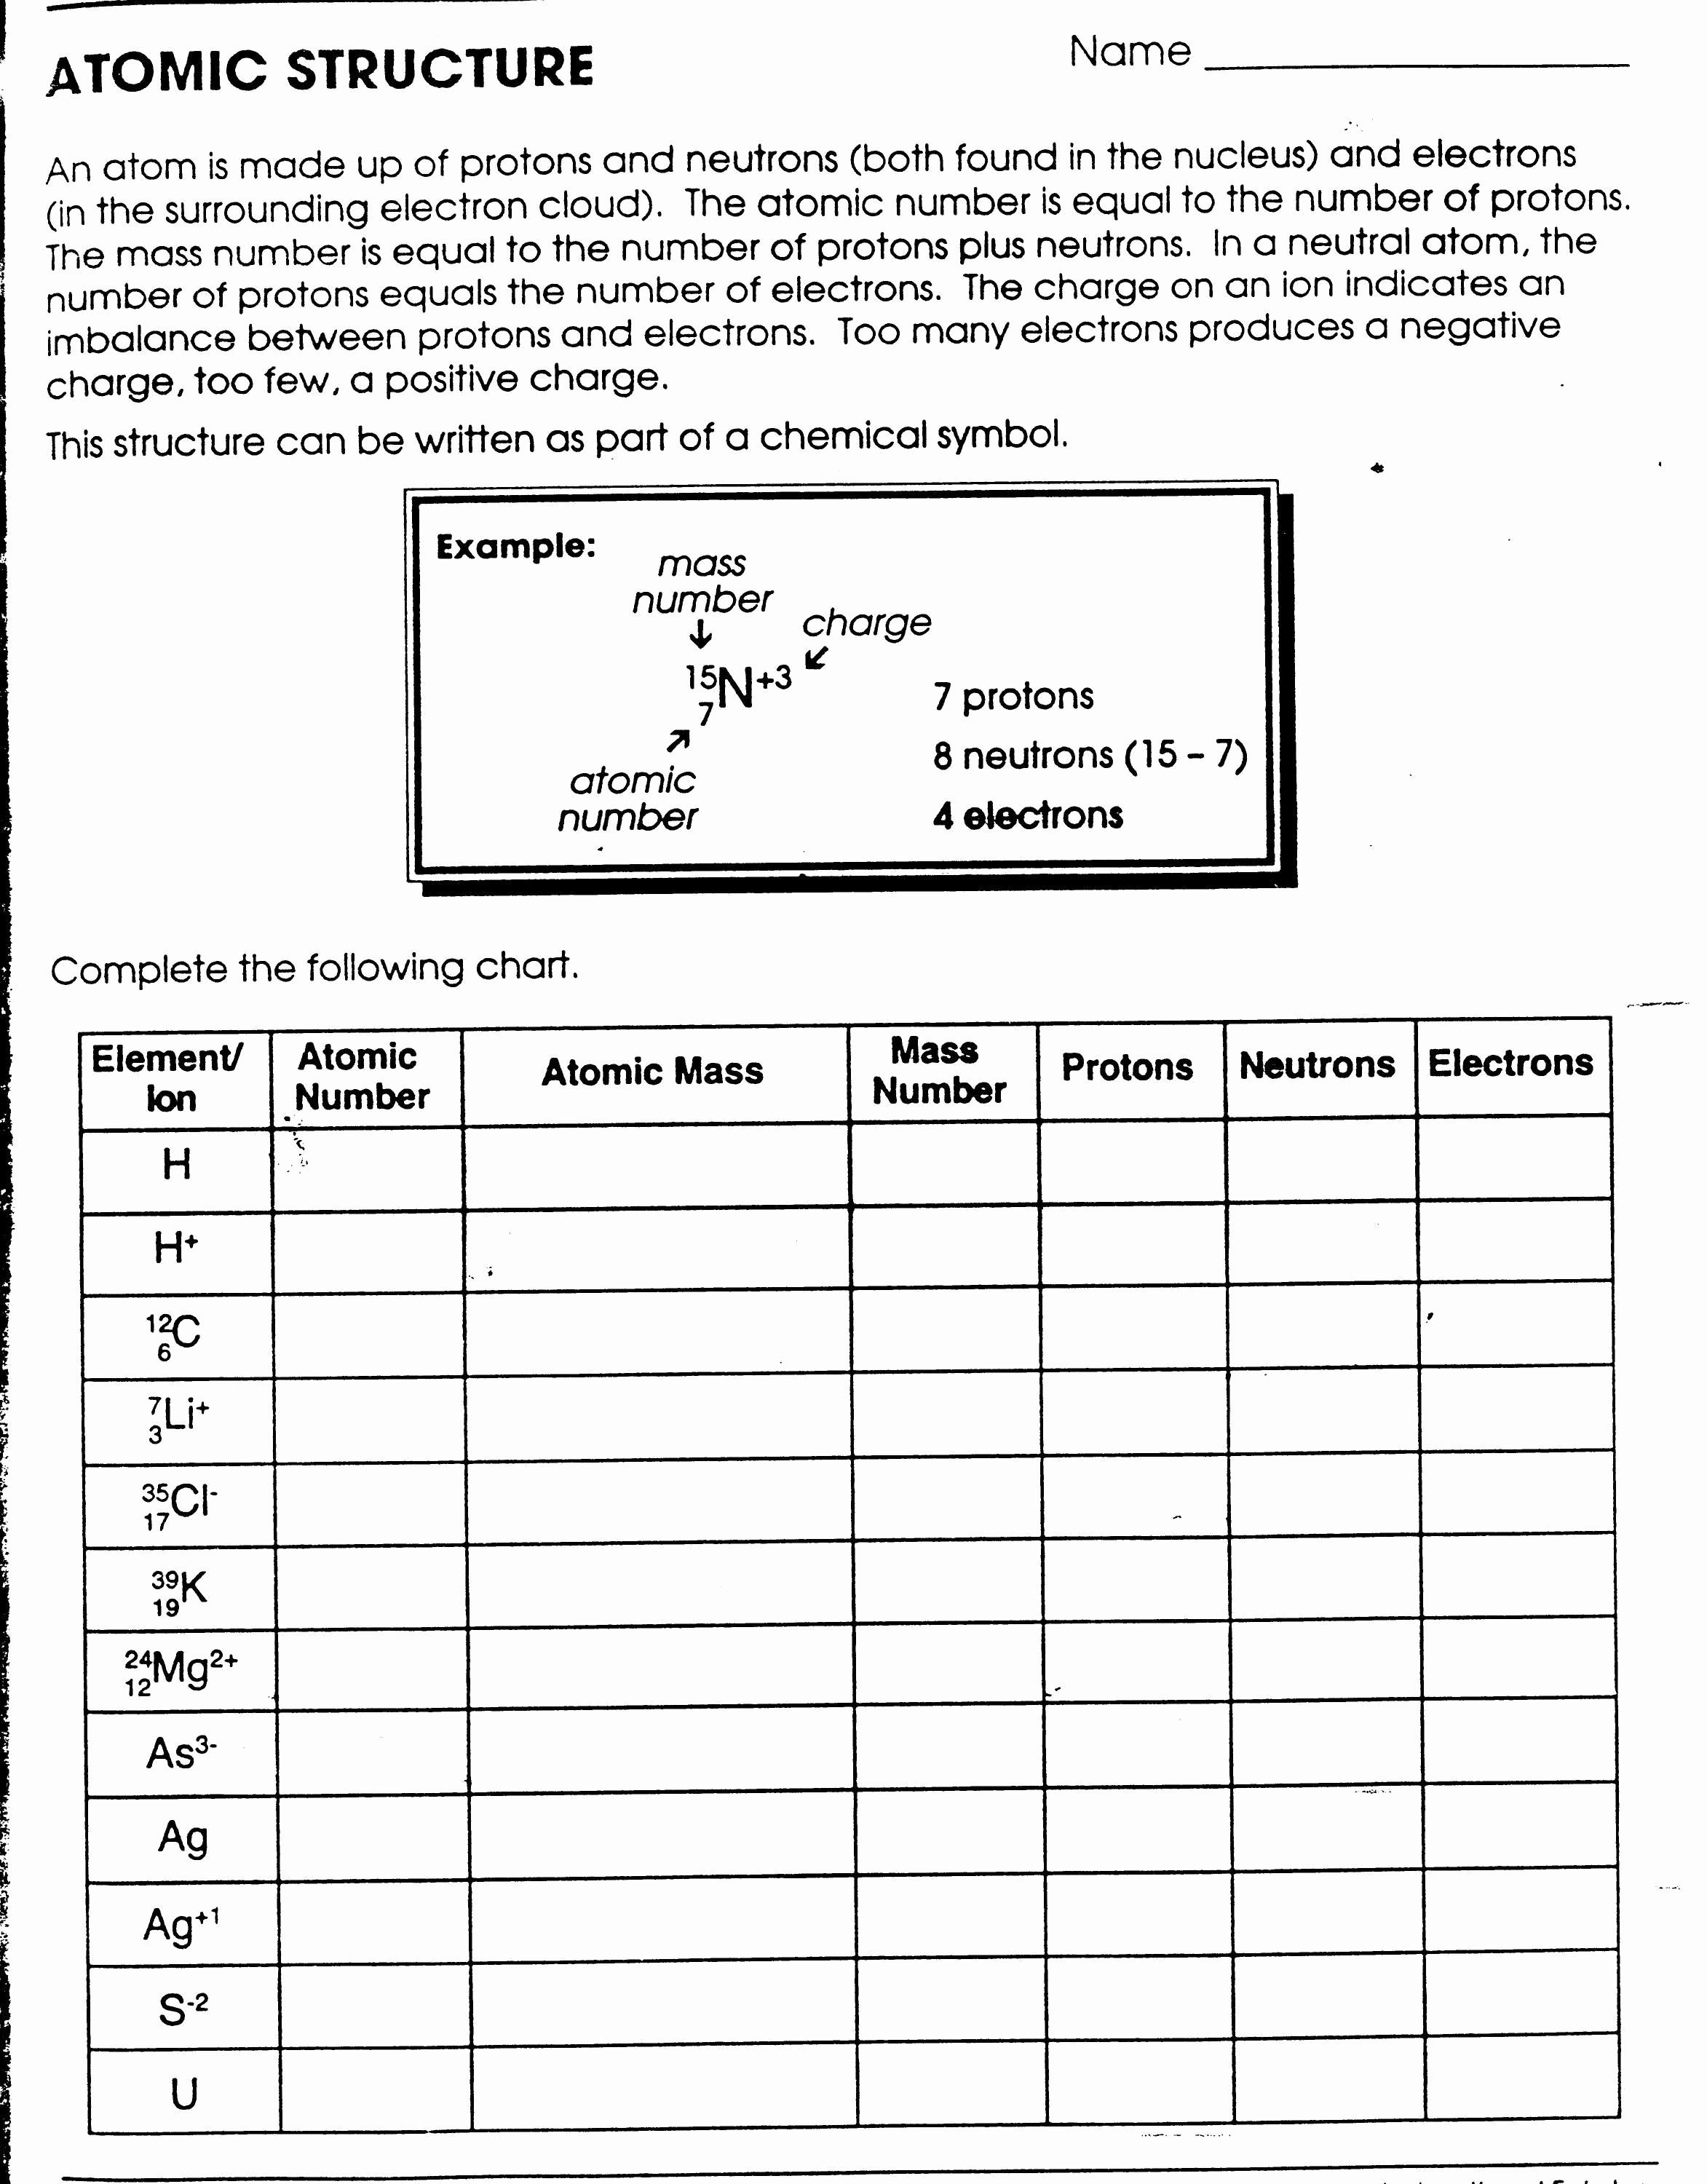 Atomic Structure Worksheet Answers Lovely Skills Worksheet Concept Review Section the Development